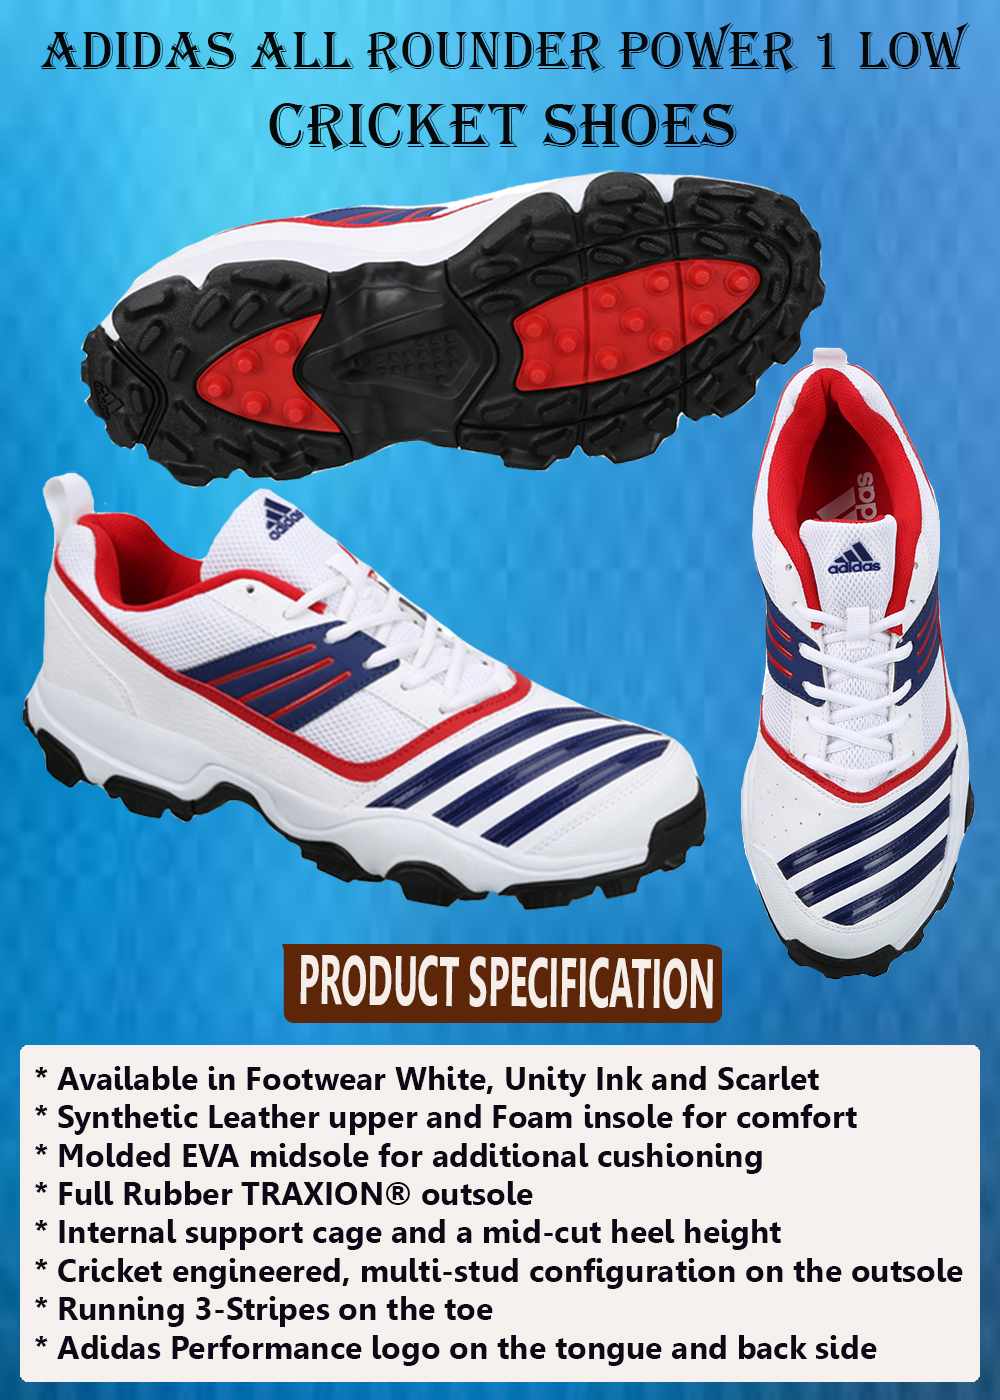 ADIDAS ALL ROUNDER POWER 1 LOW CRICKET SHOES_5